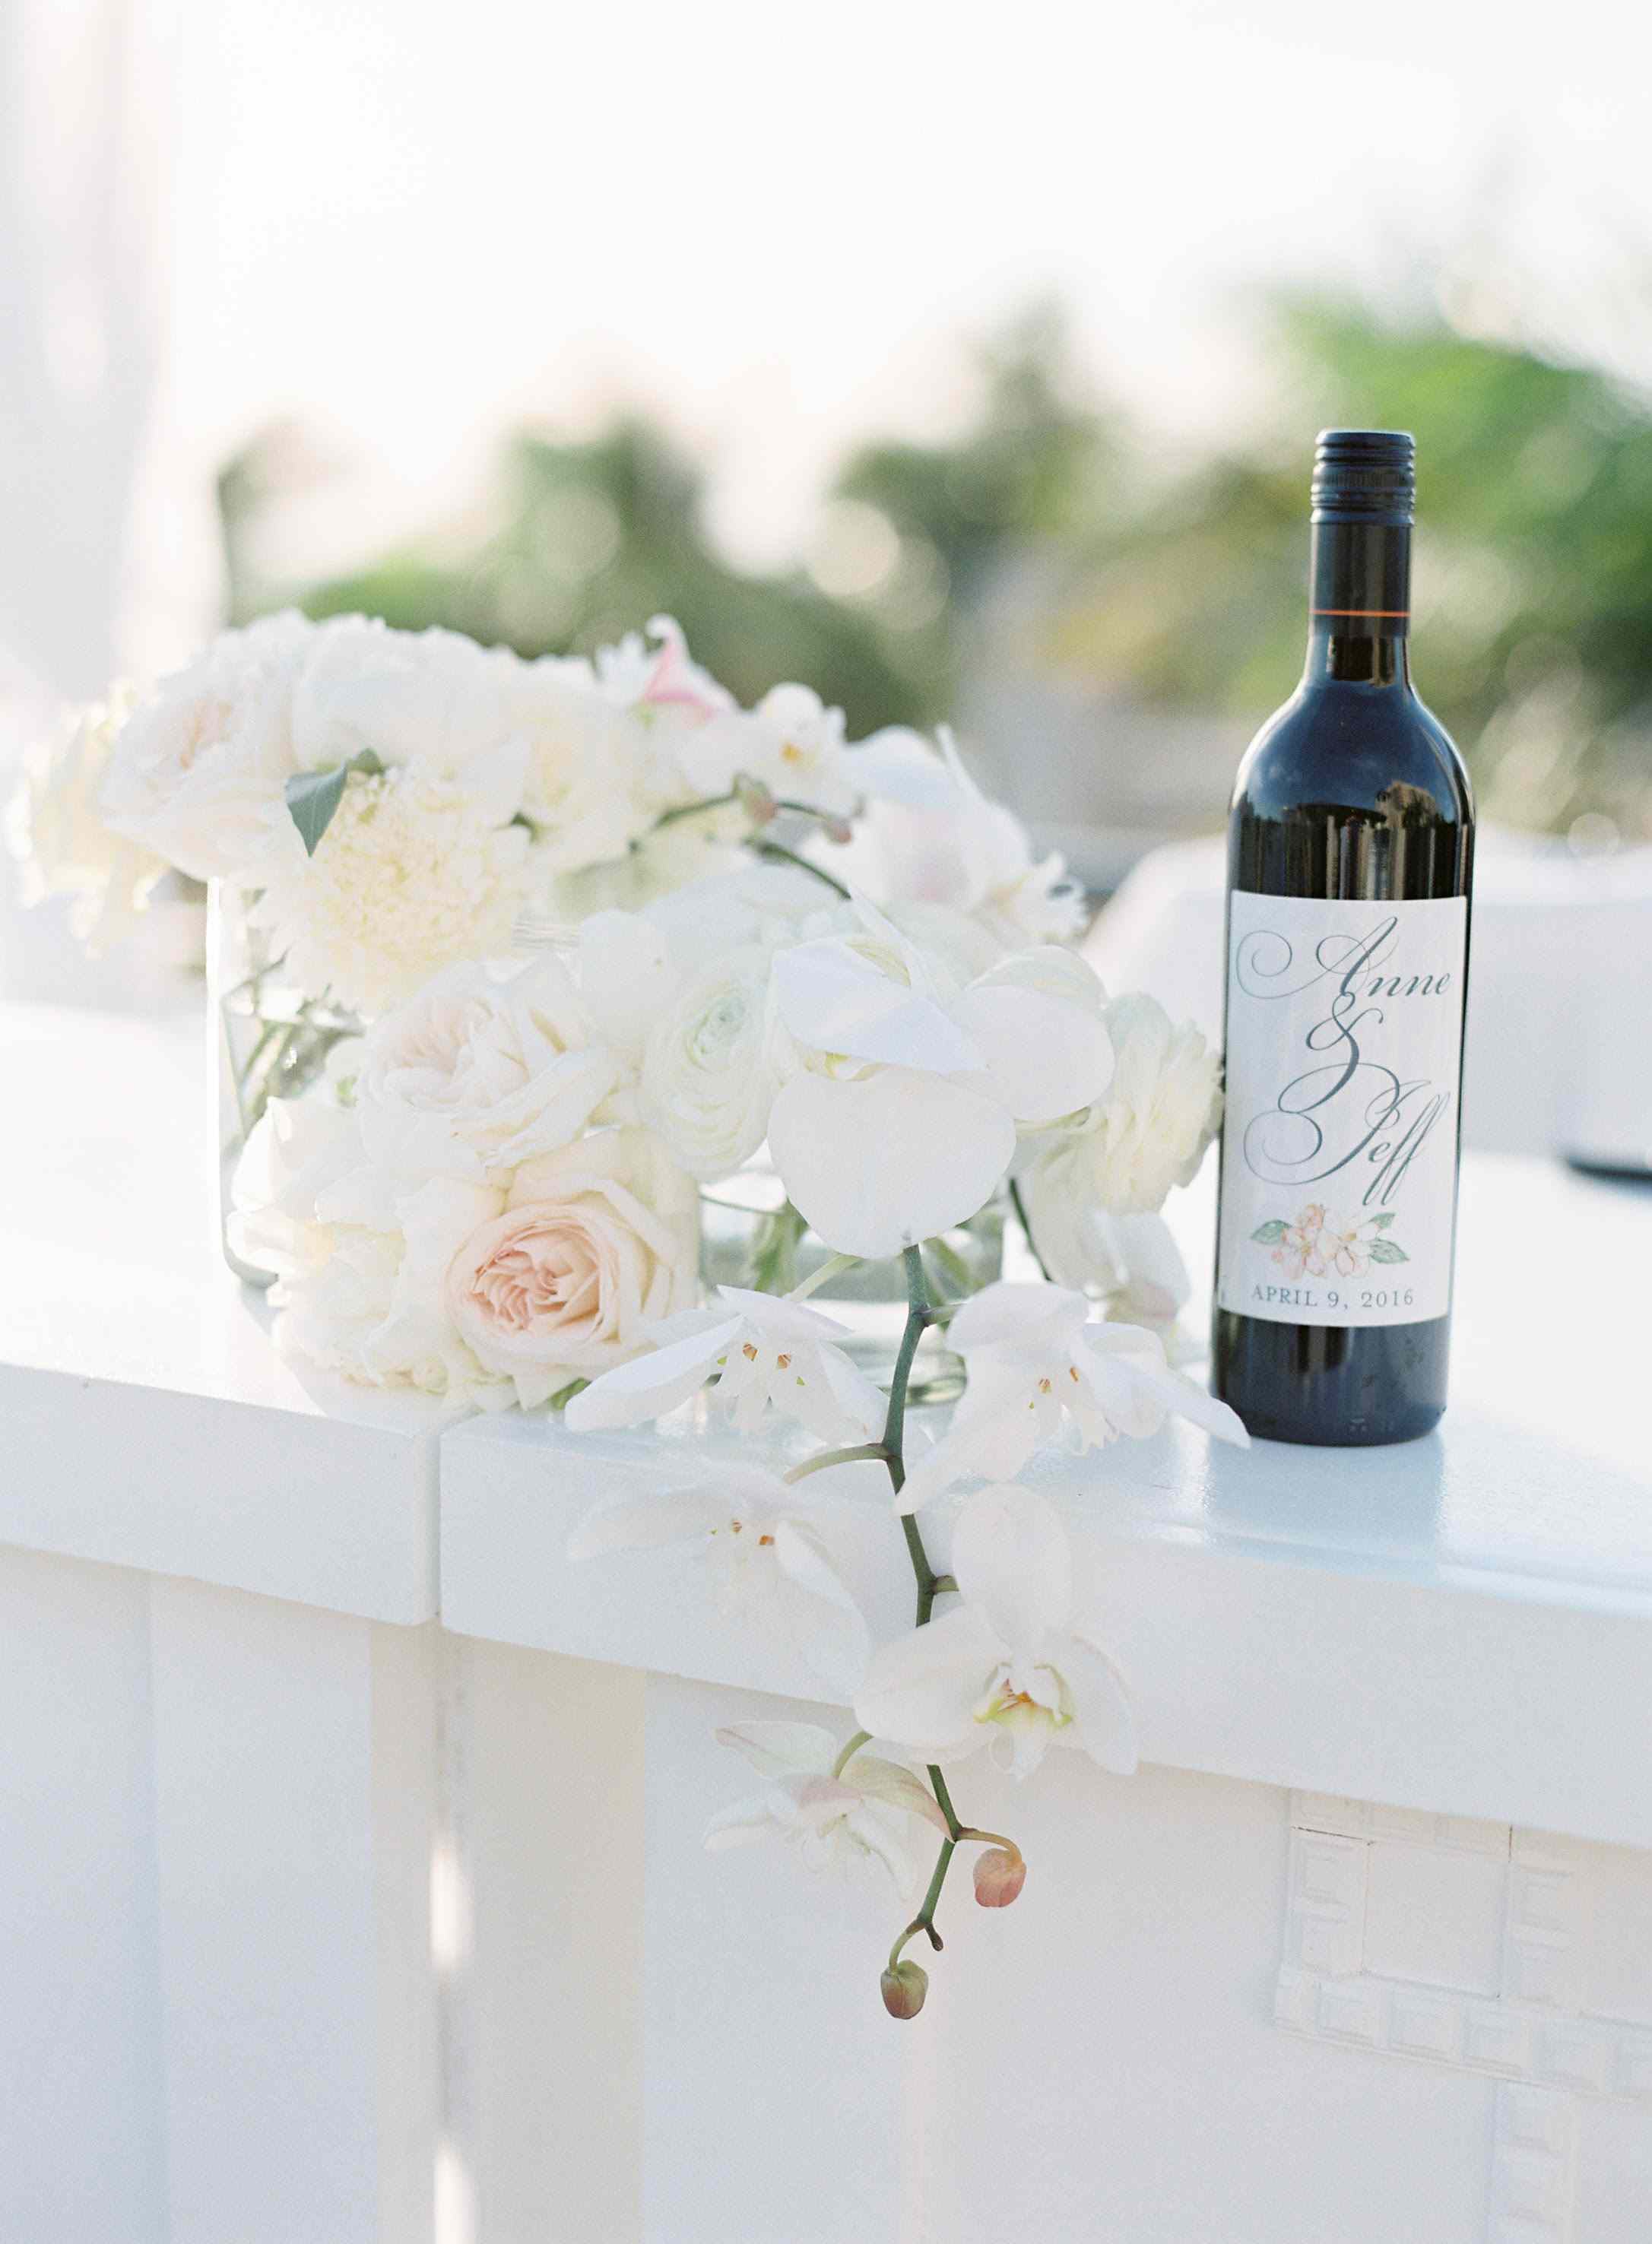 Customized Wine Labels With Calligraphed Name